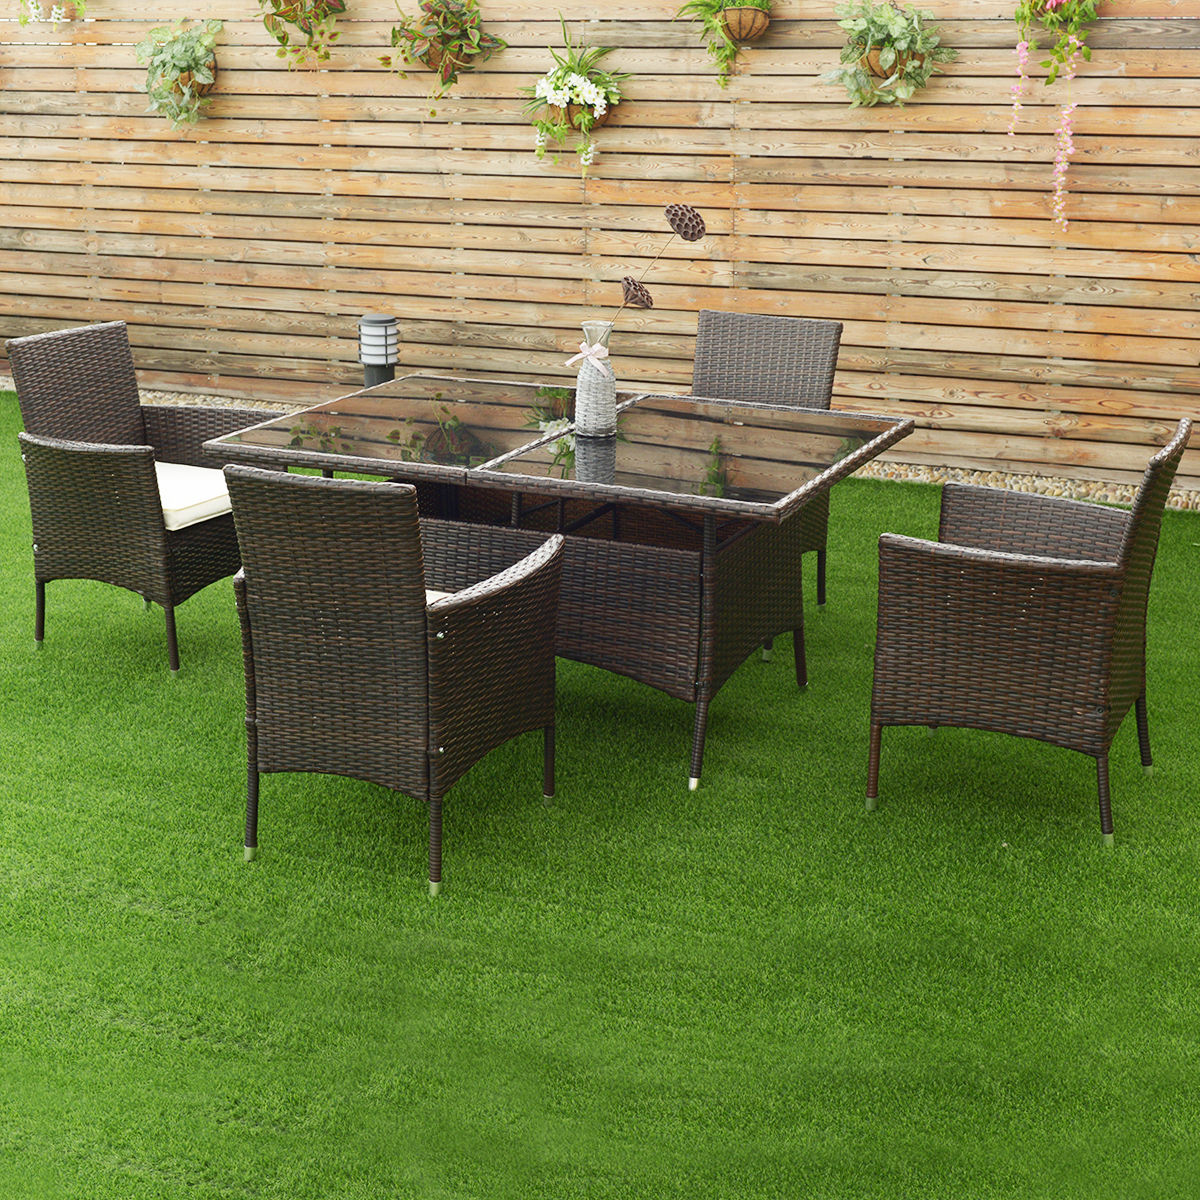 Exceptionnel Costway 5PCS Rattan Garden Sofa Set Outdoor Patio Furniture Table Chair  With Cushion